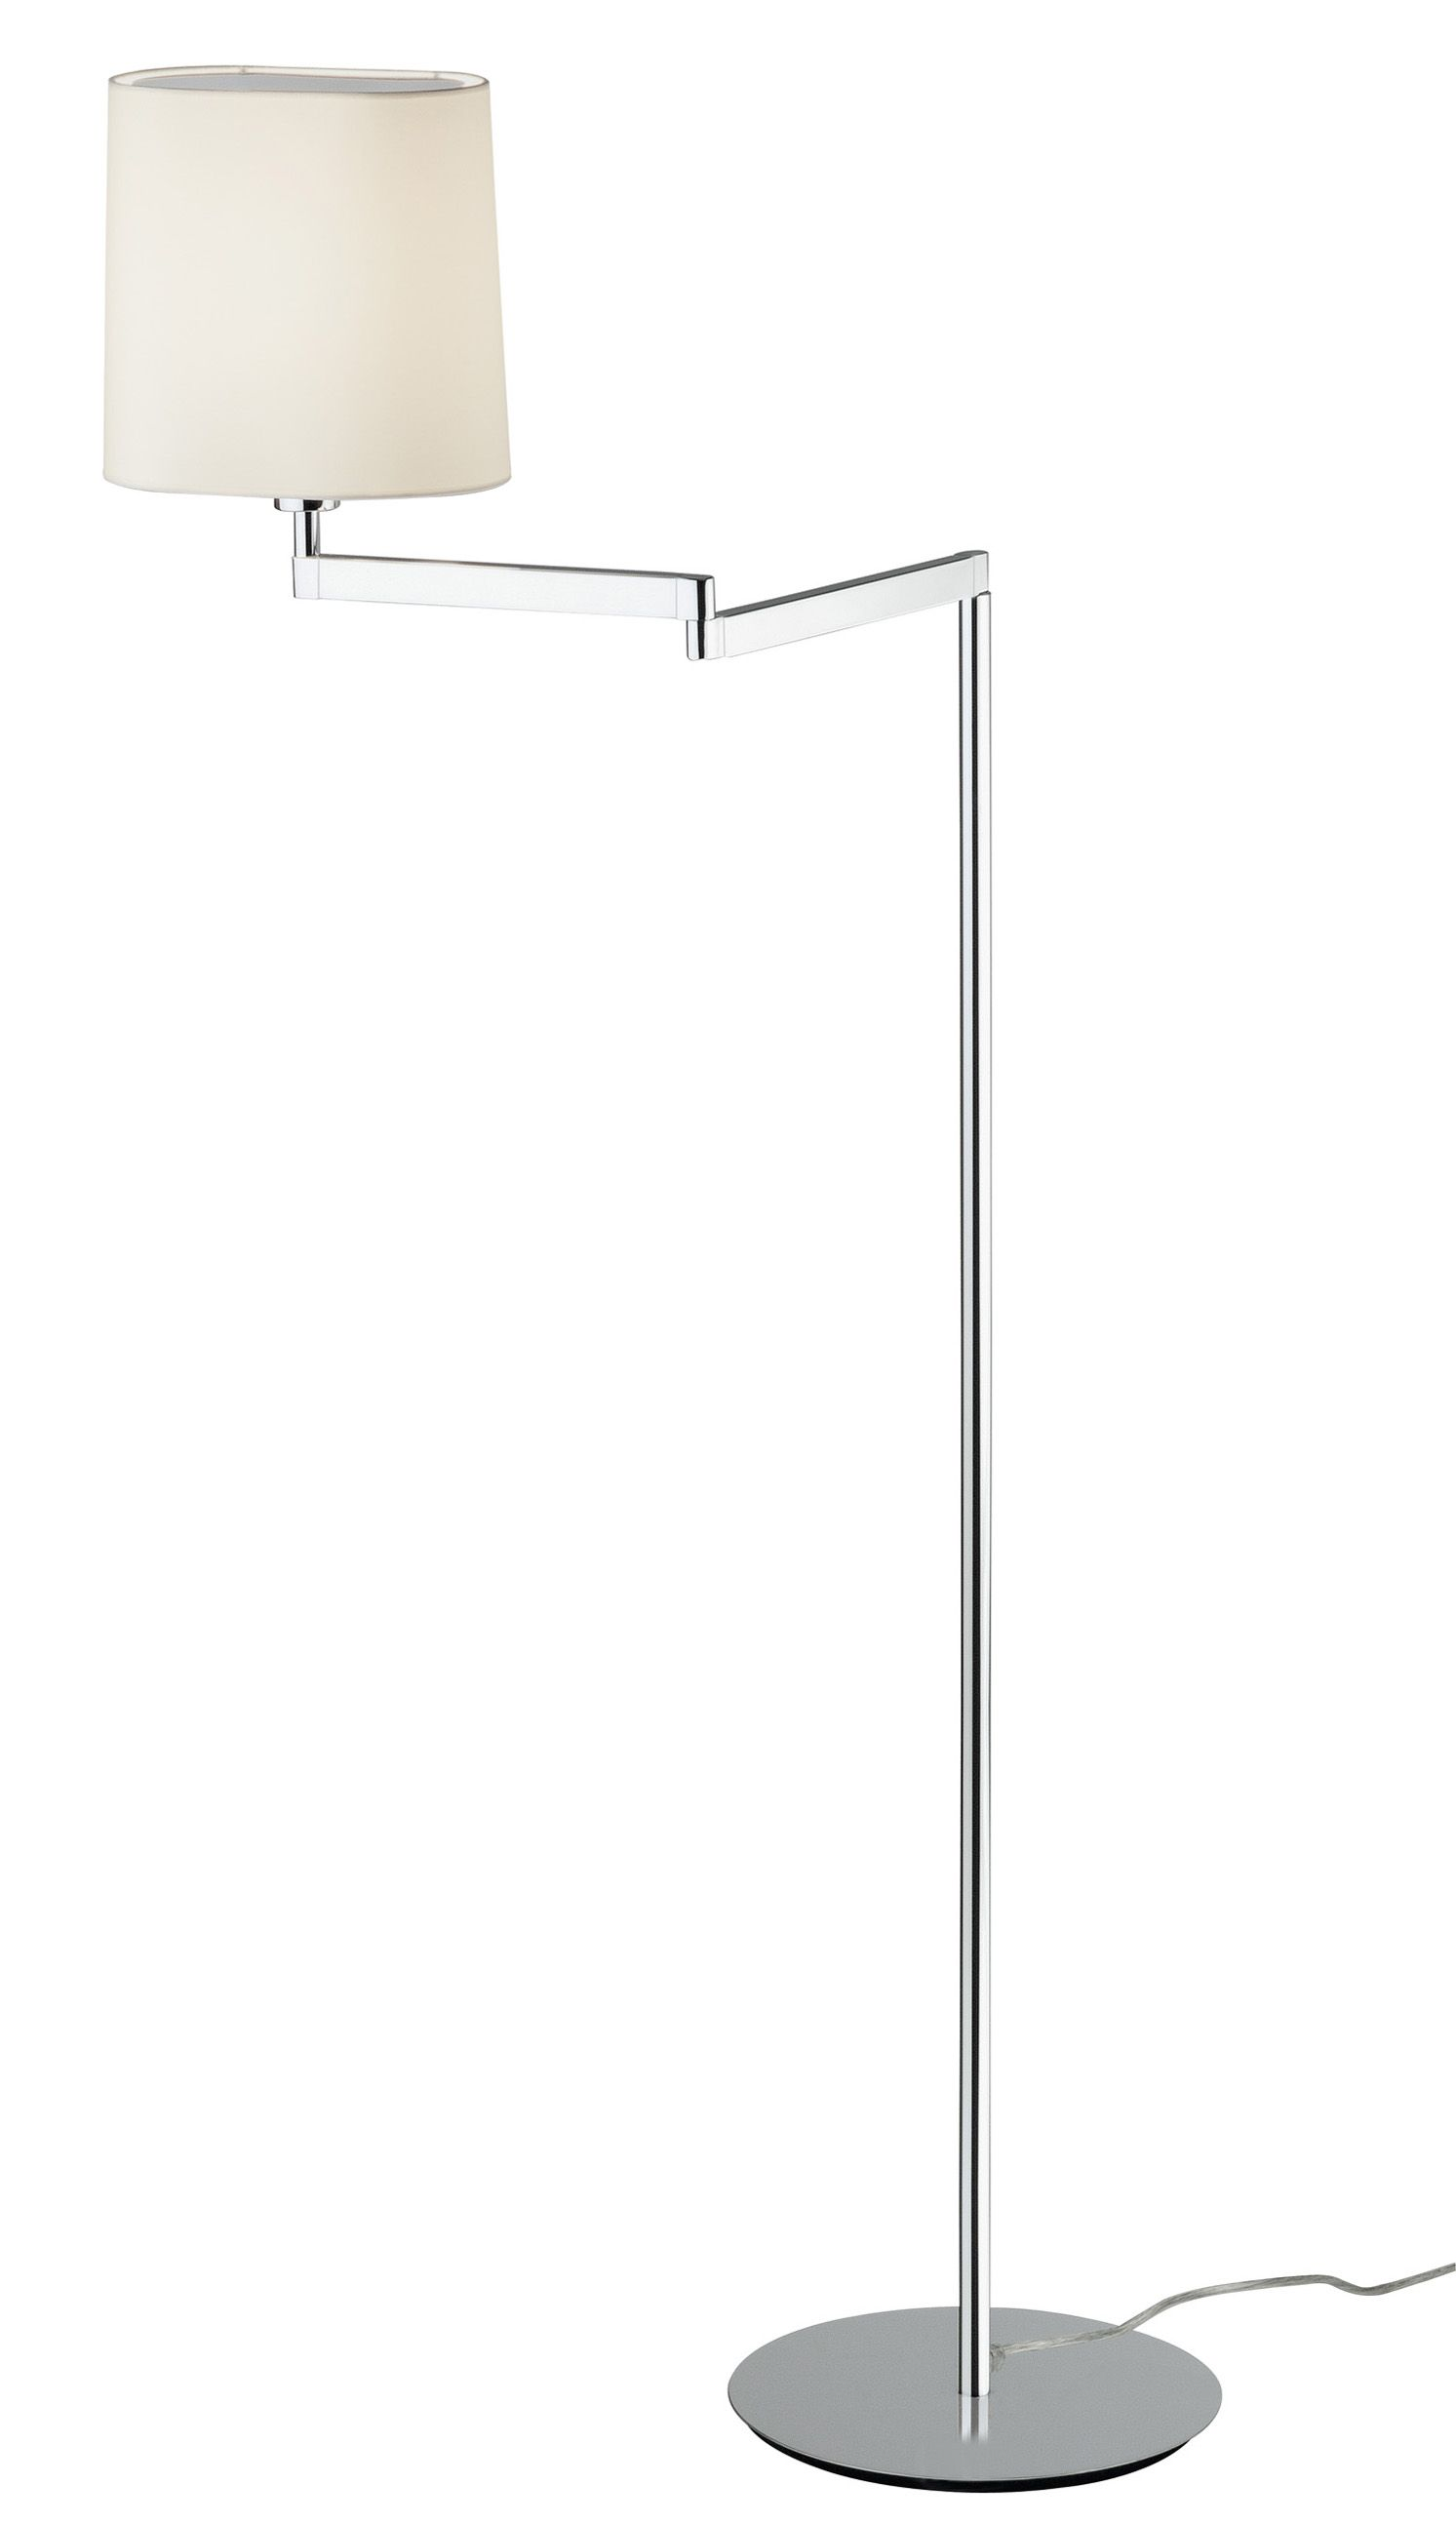 Floor Light For General Lighting Which Distributes Light Equally In All Directions It Is Distinguished By A Double Jointed With Images Lamp Modern Floor Lamps Floor Lamp